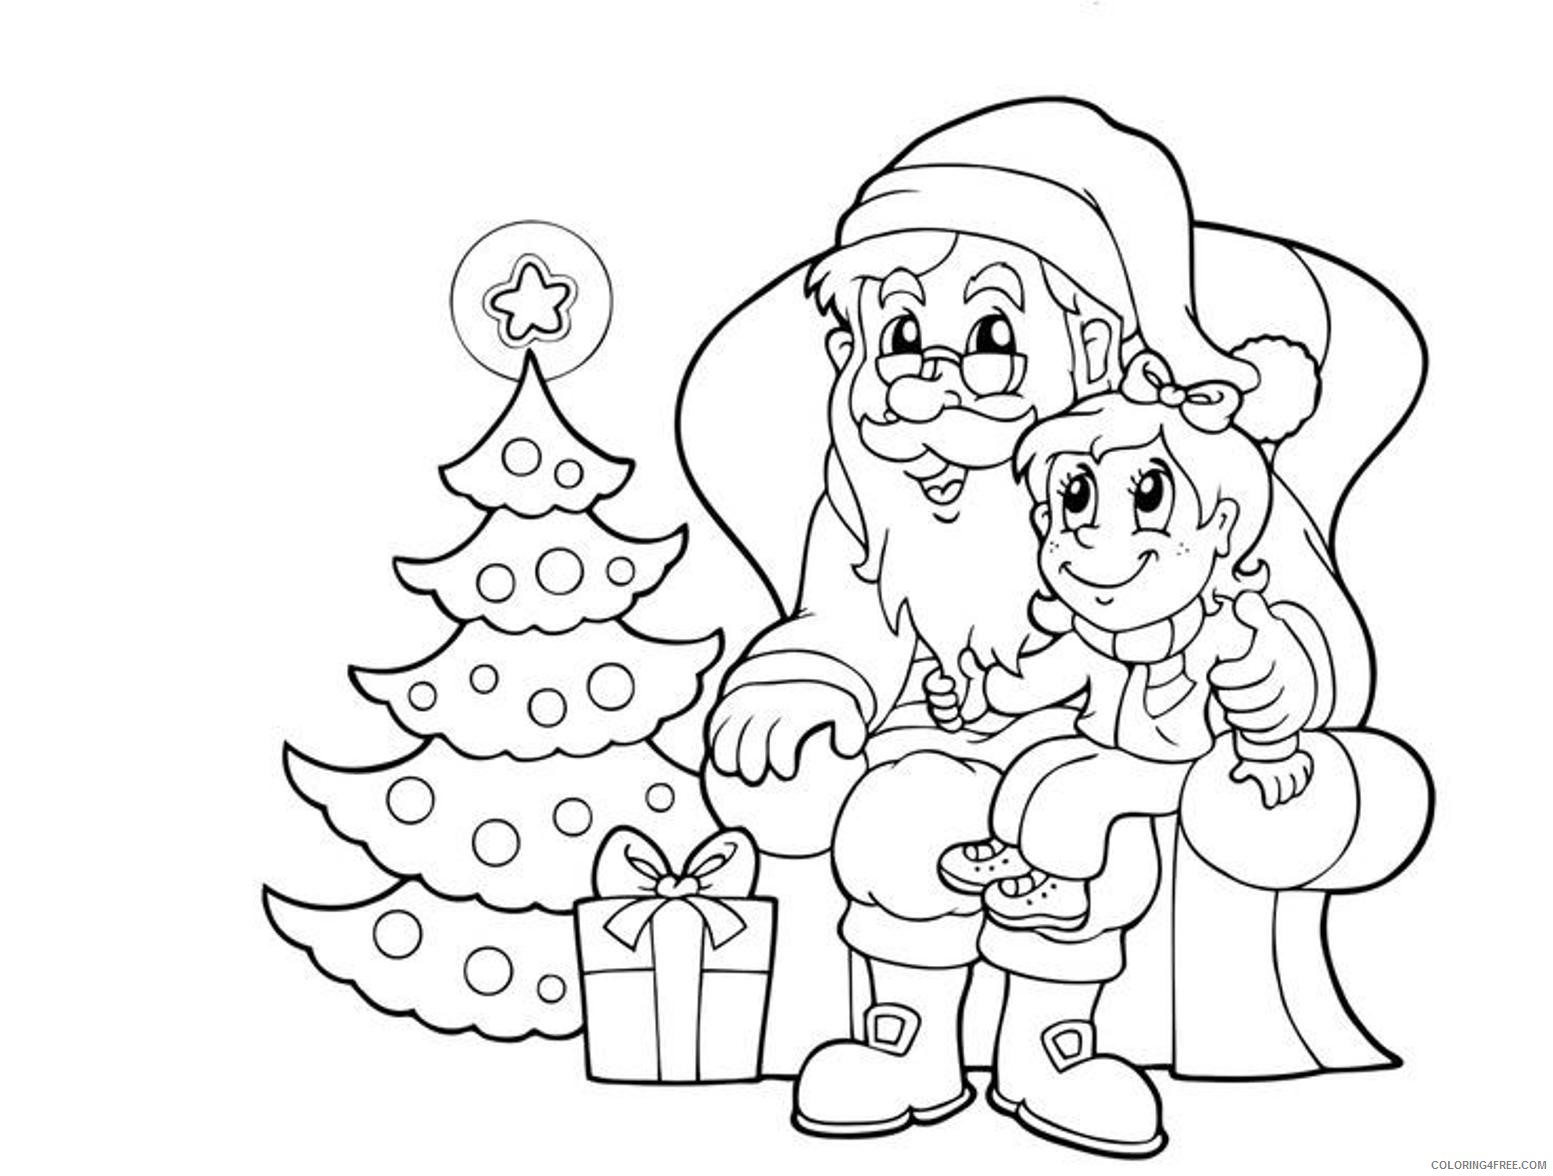 Free Santa Claus Template Printable, Download Free Clip Art, Free ... | 1176x1553